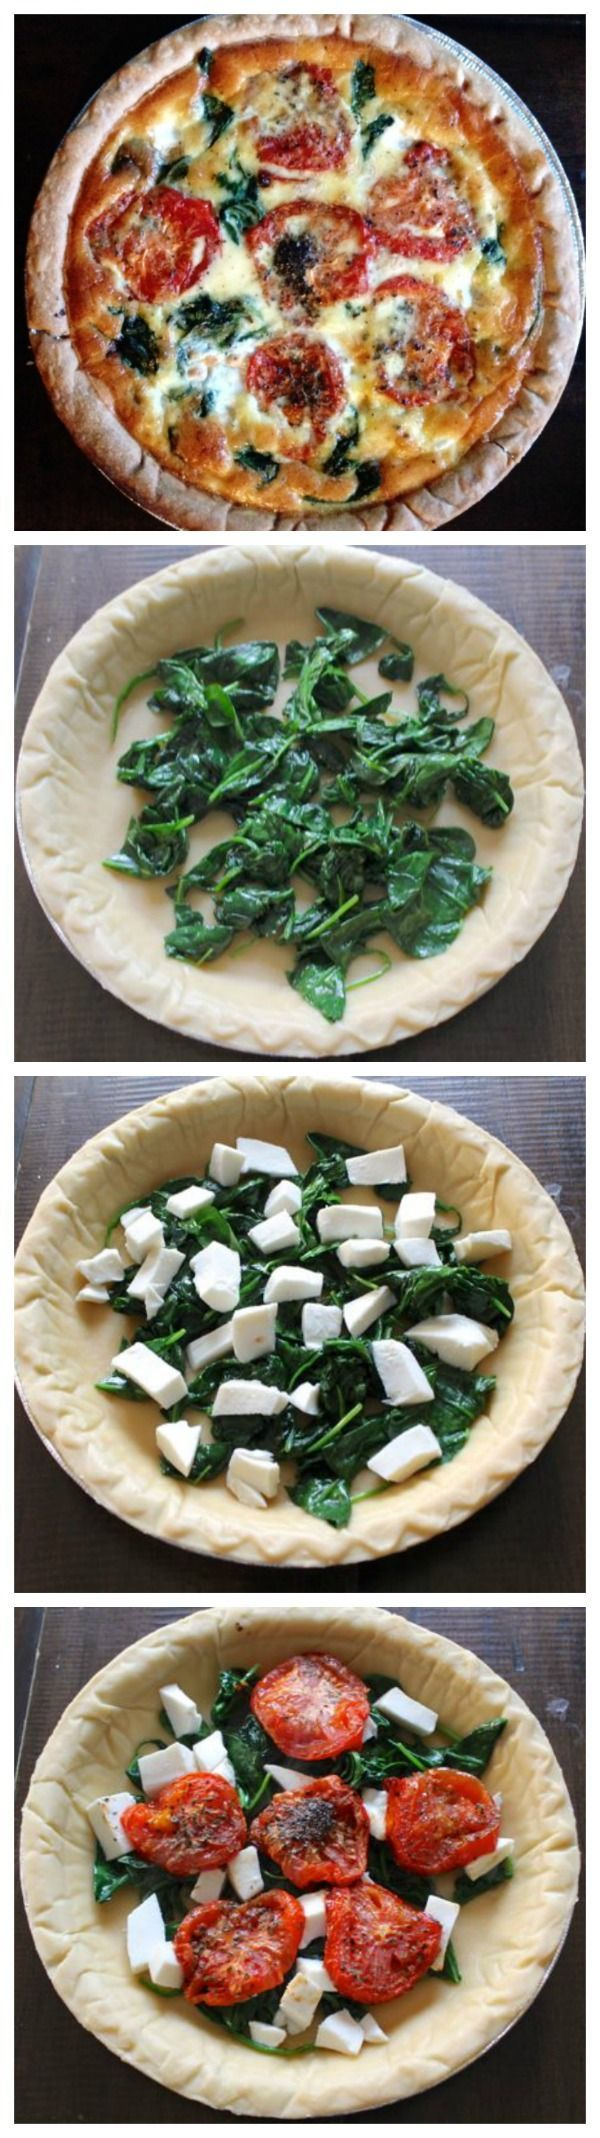 Roasted Tomato, Mozzarella, and Spinach Quiche, an easy vegetarian brunch recipe.